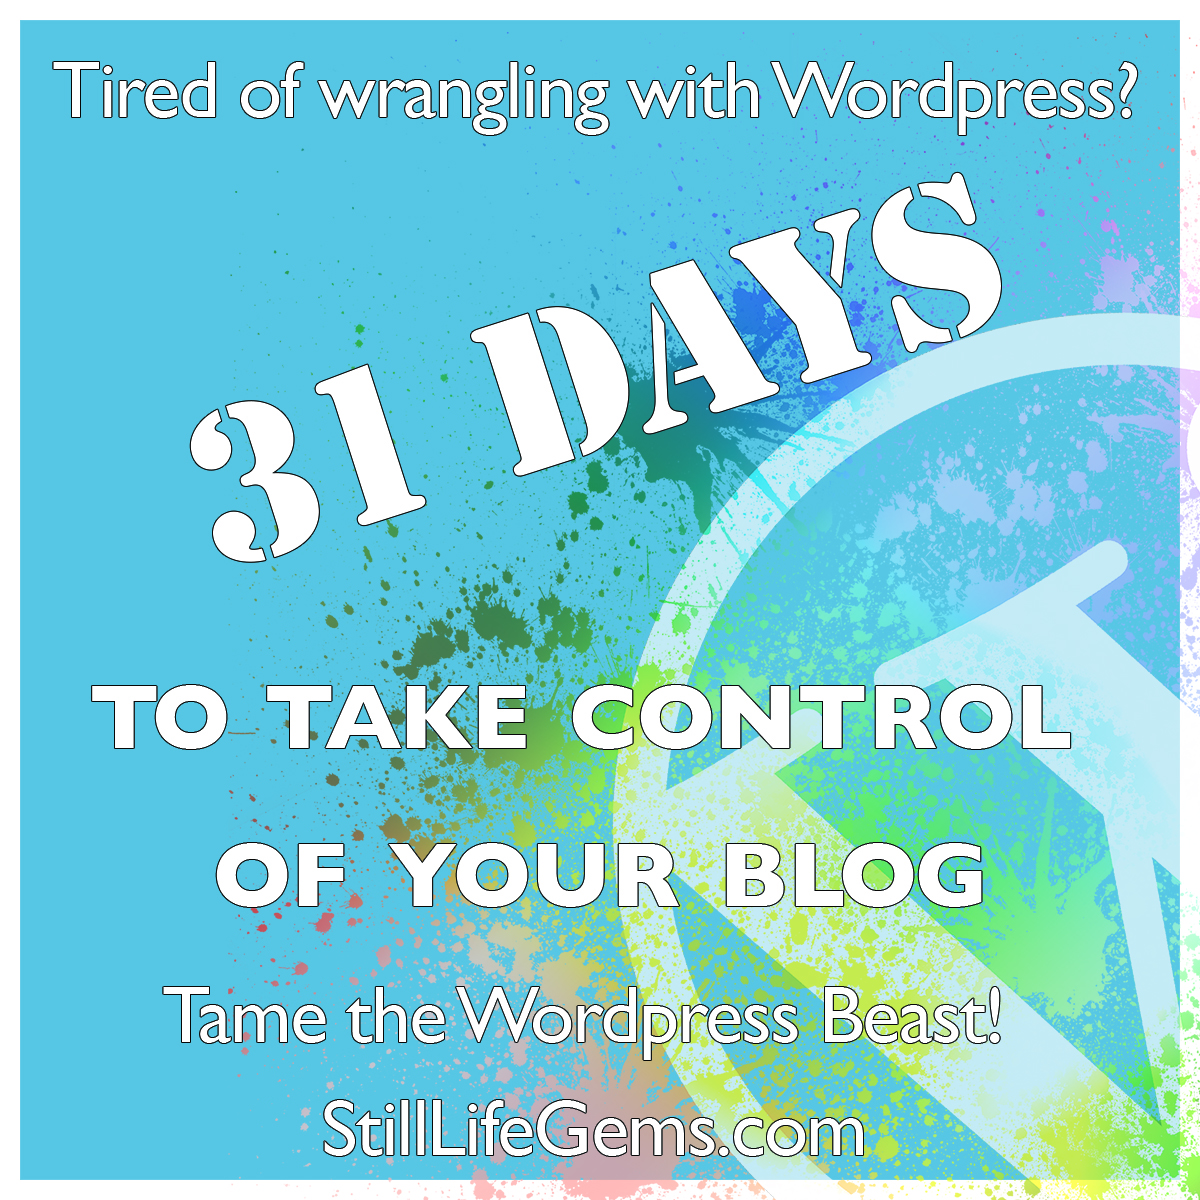 31 Days to Take Control of Your Blog